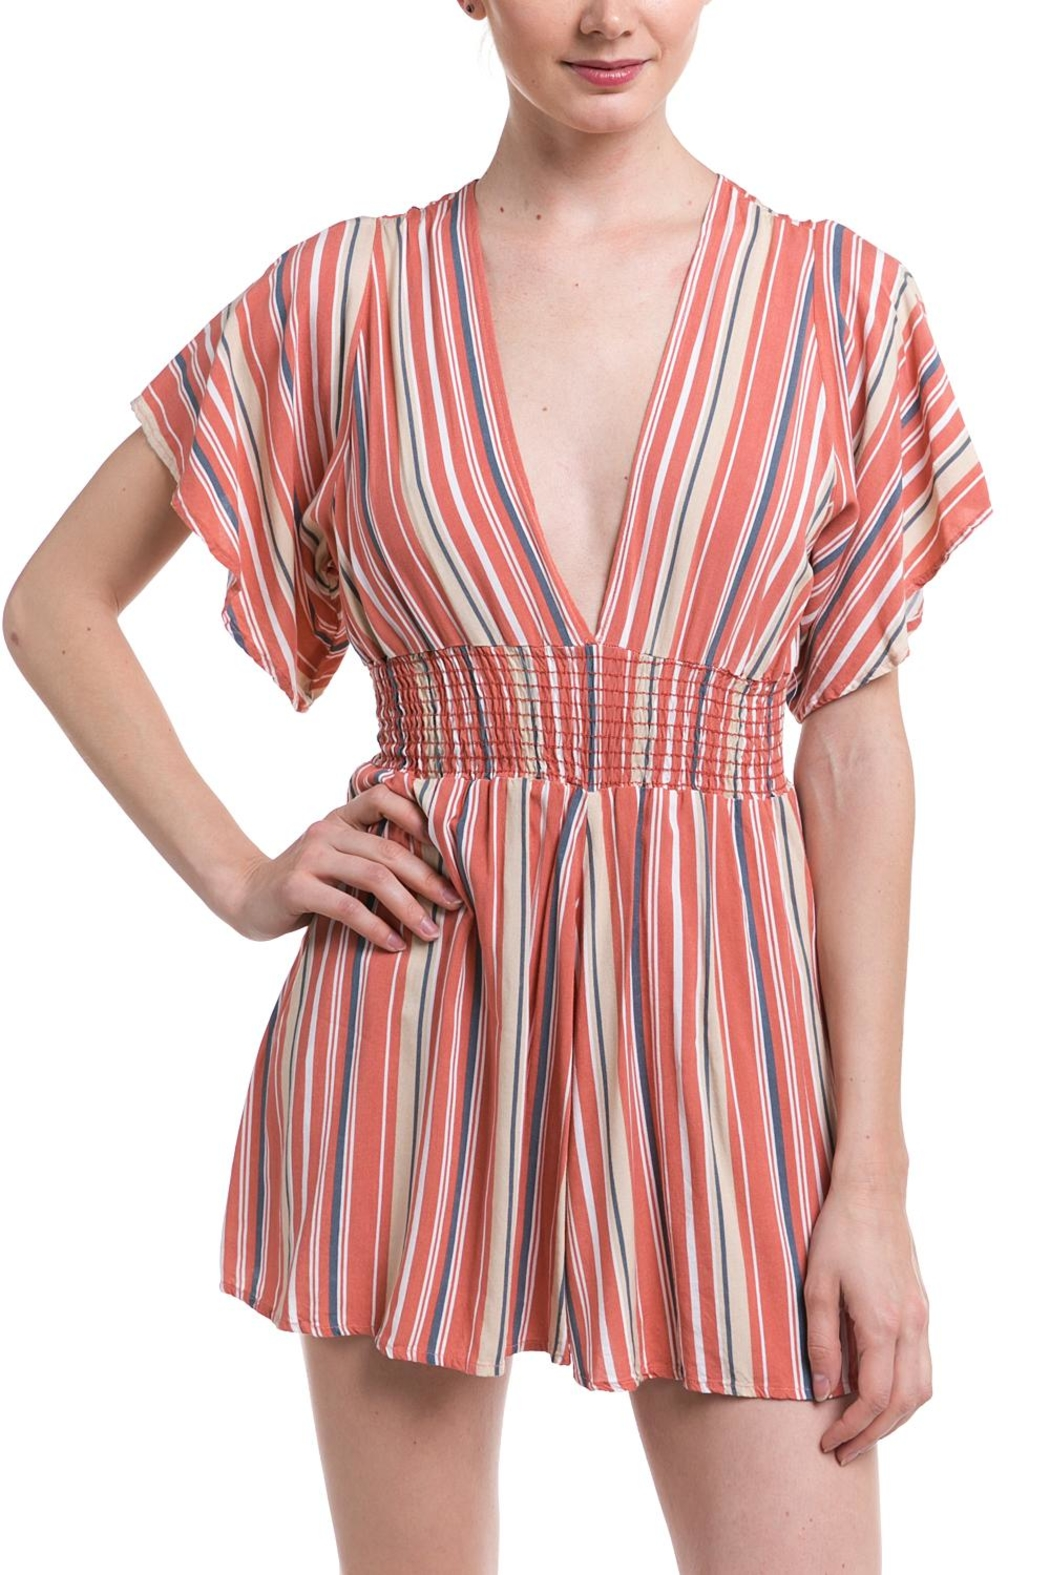 Final Touch Striped Smocked Romper - Main Image